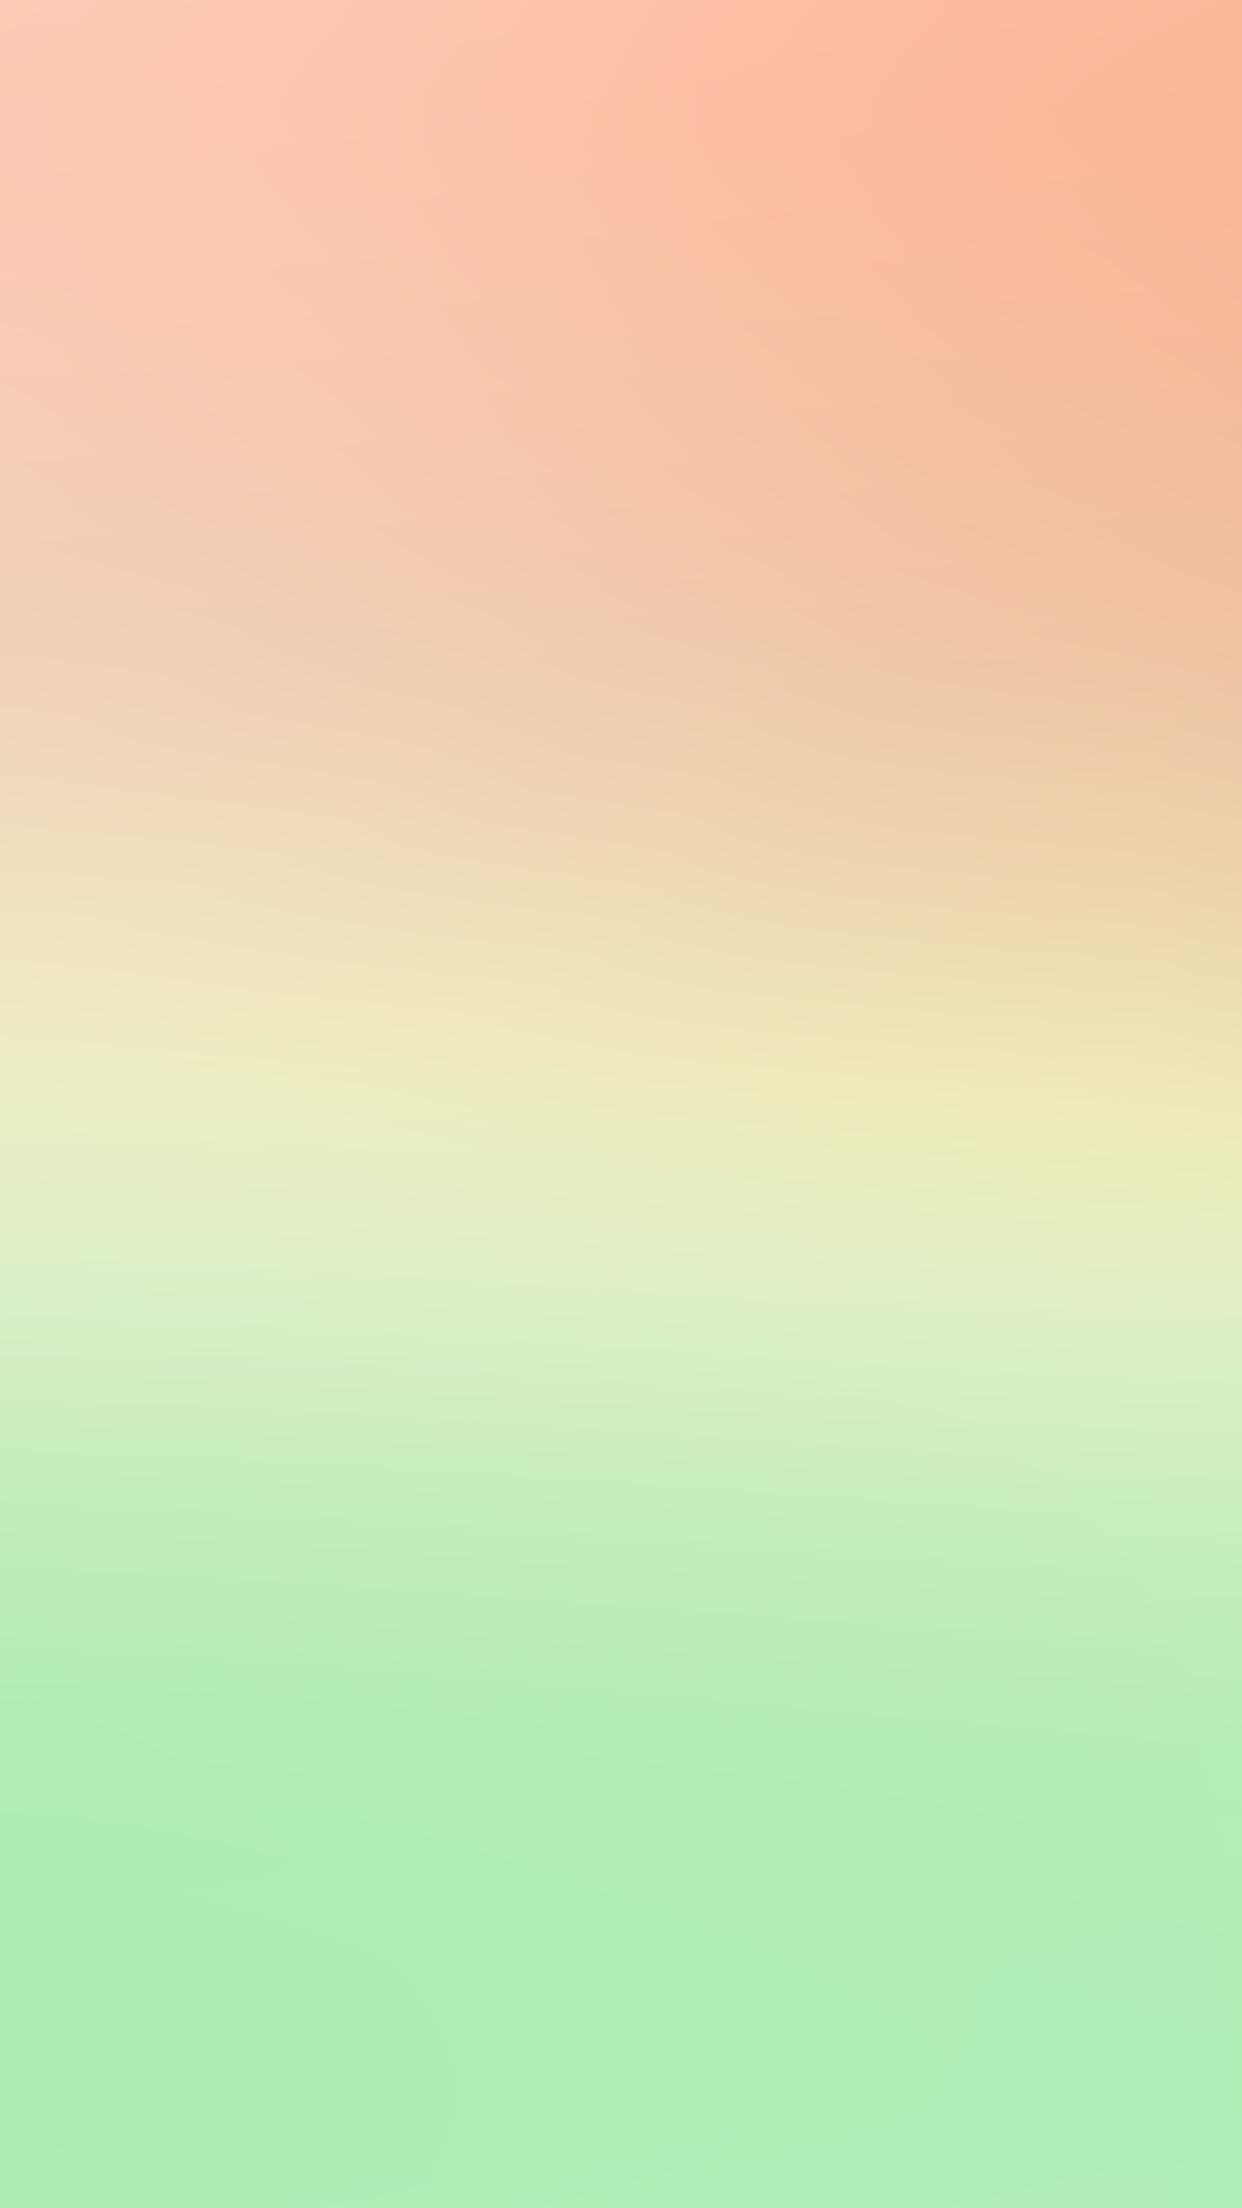 Car Wallpapers For Iphone 6 Sl92 Red Green Pastel Blur Gradation Wallpaper